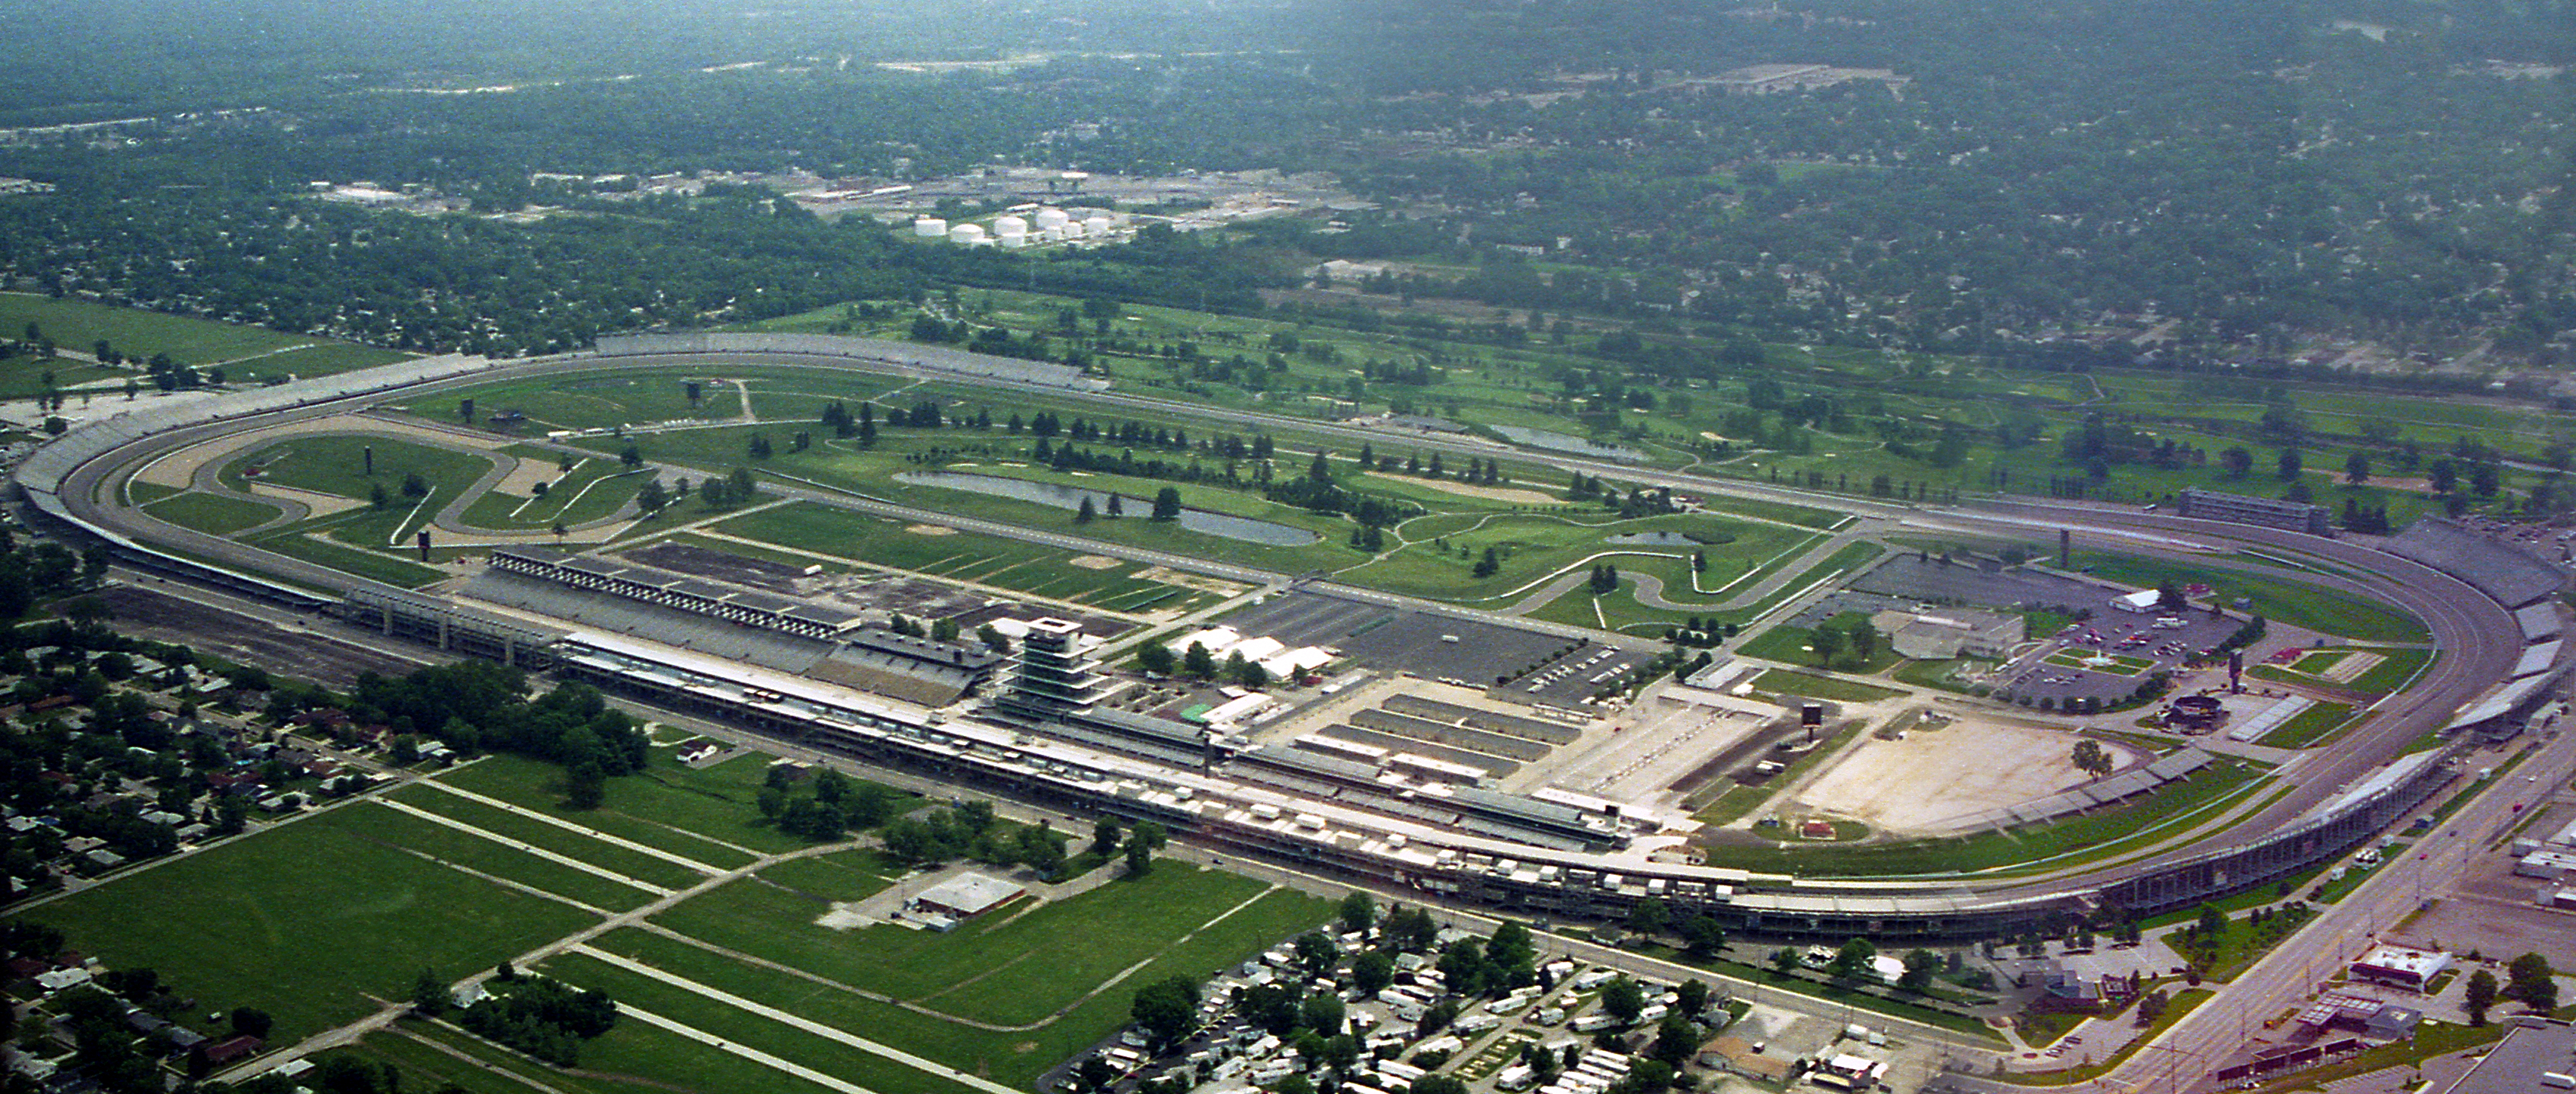 Depiction of Indianapolis Motor Speedway